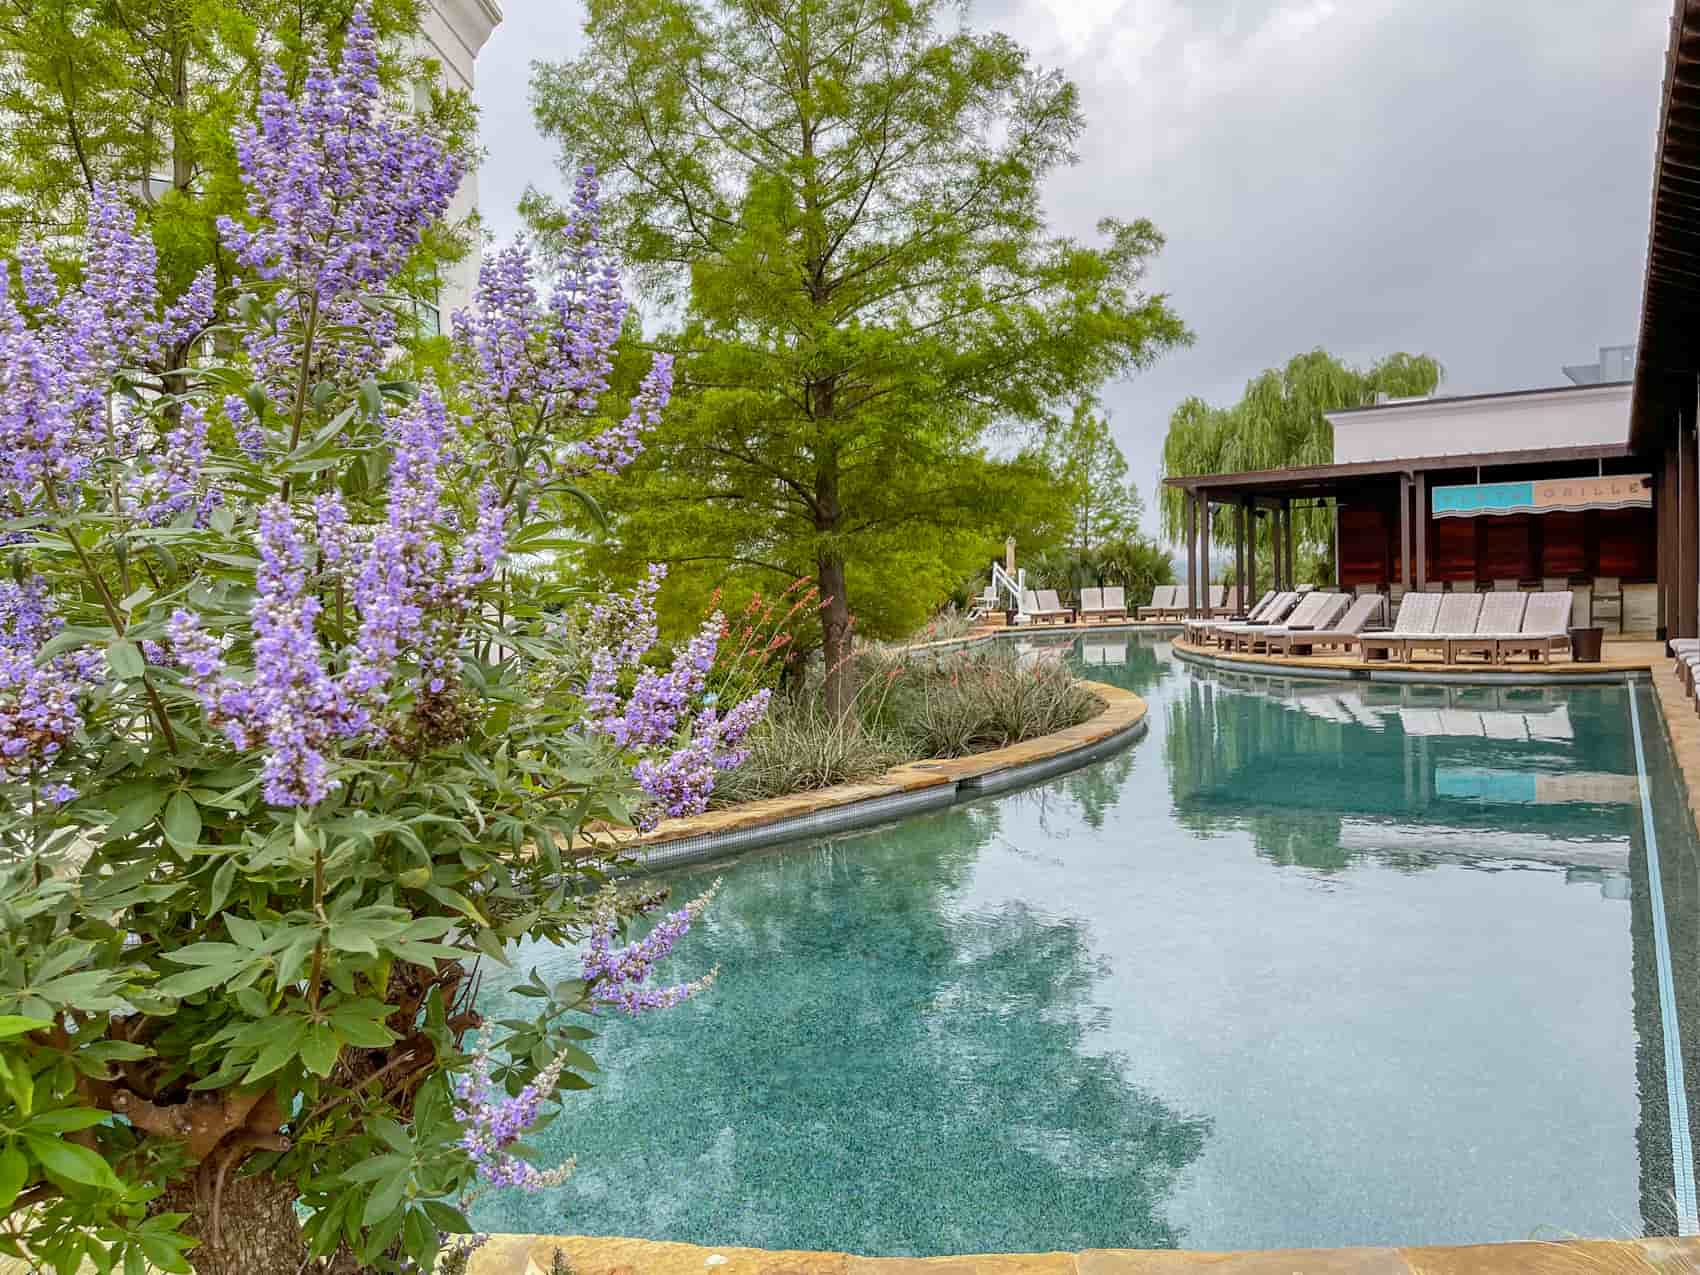 la cantera pool at the best place to stay in San Antonio